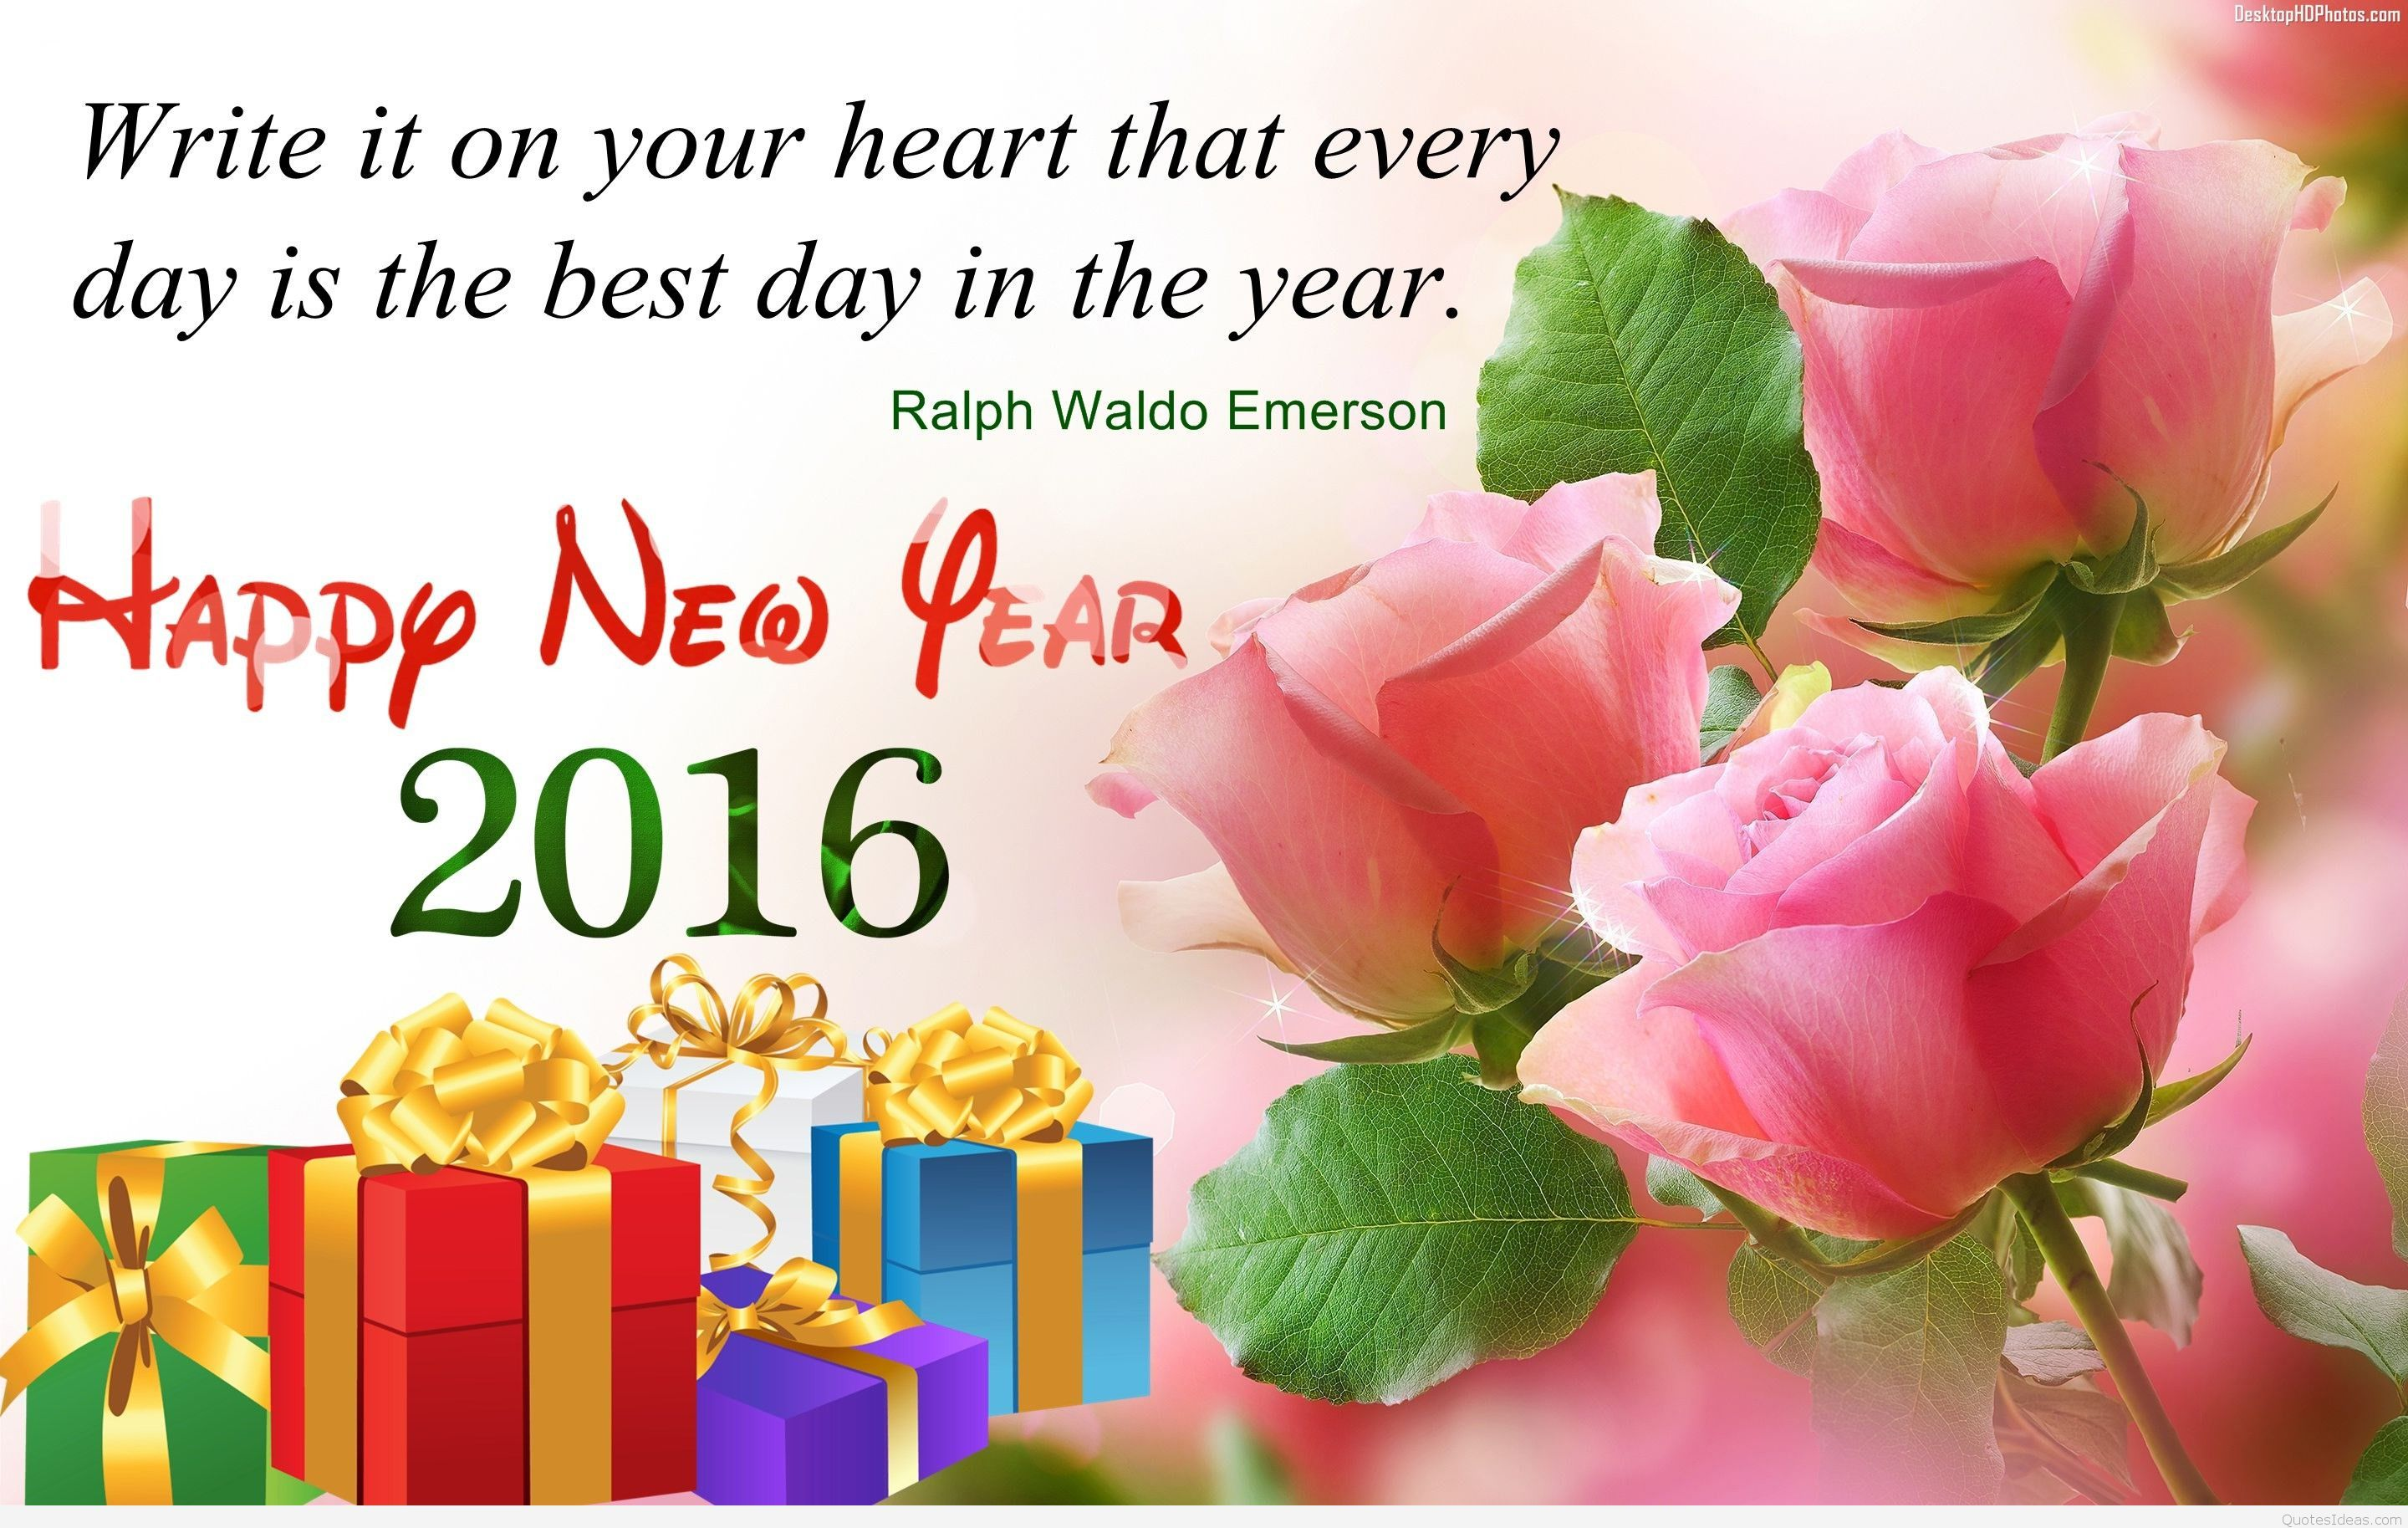 Happy New Year Instagram Quotes Images Wallpapers 2016 Adorable